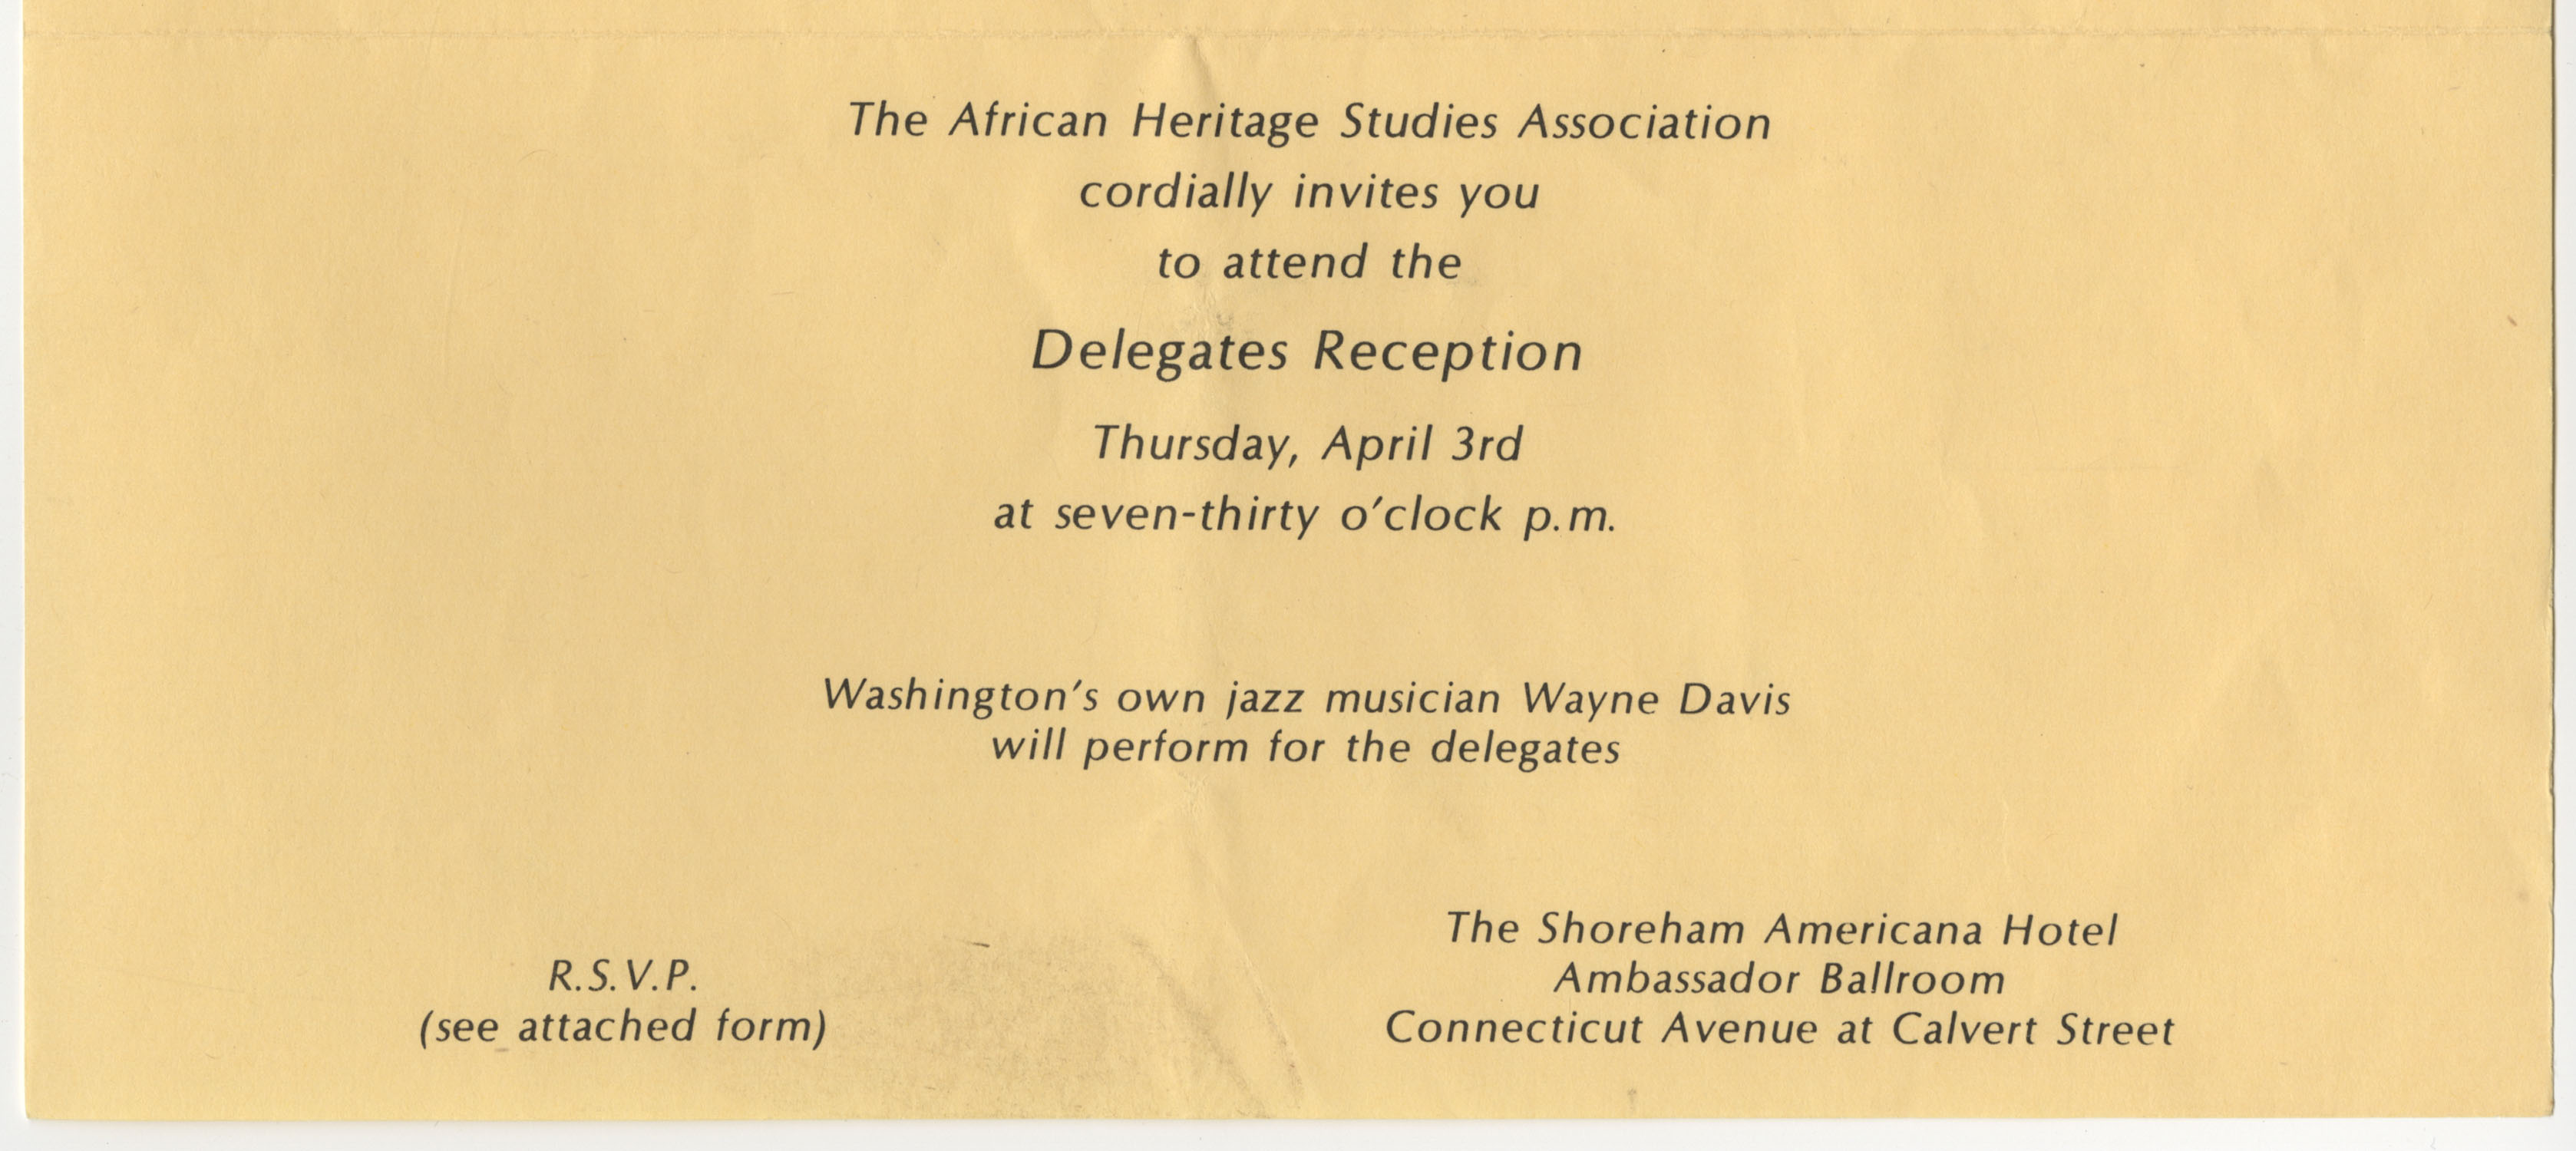 African American Heritage Studies Association Delegates Reception Invitation, Page 1